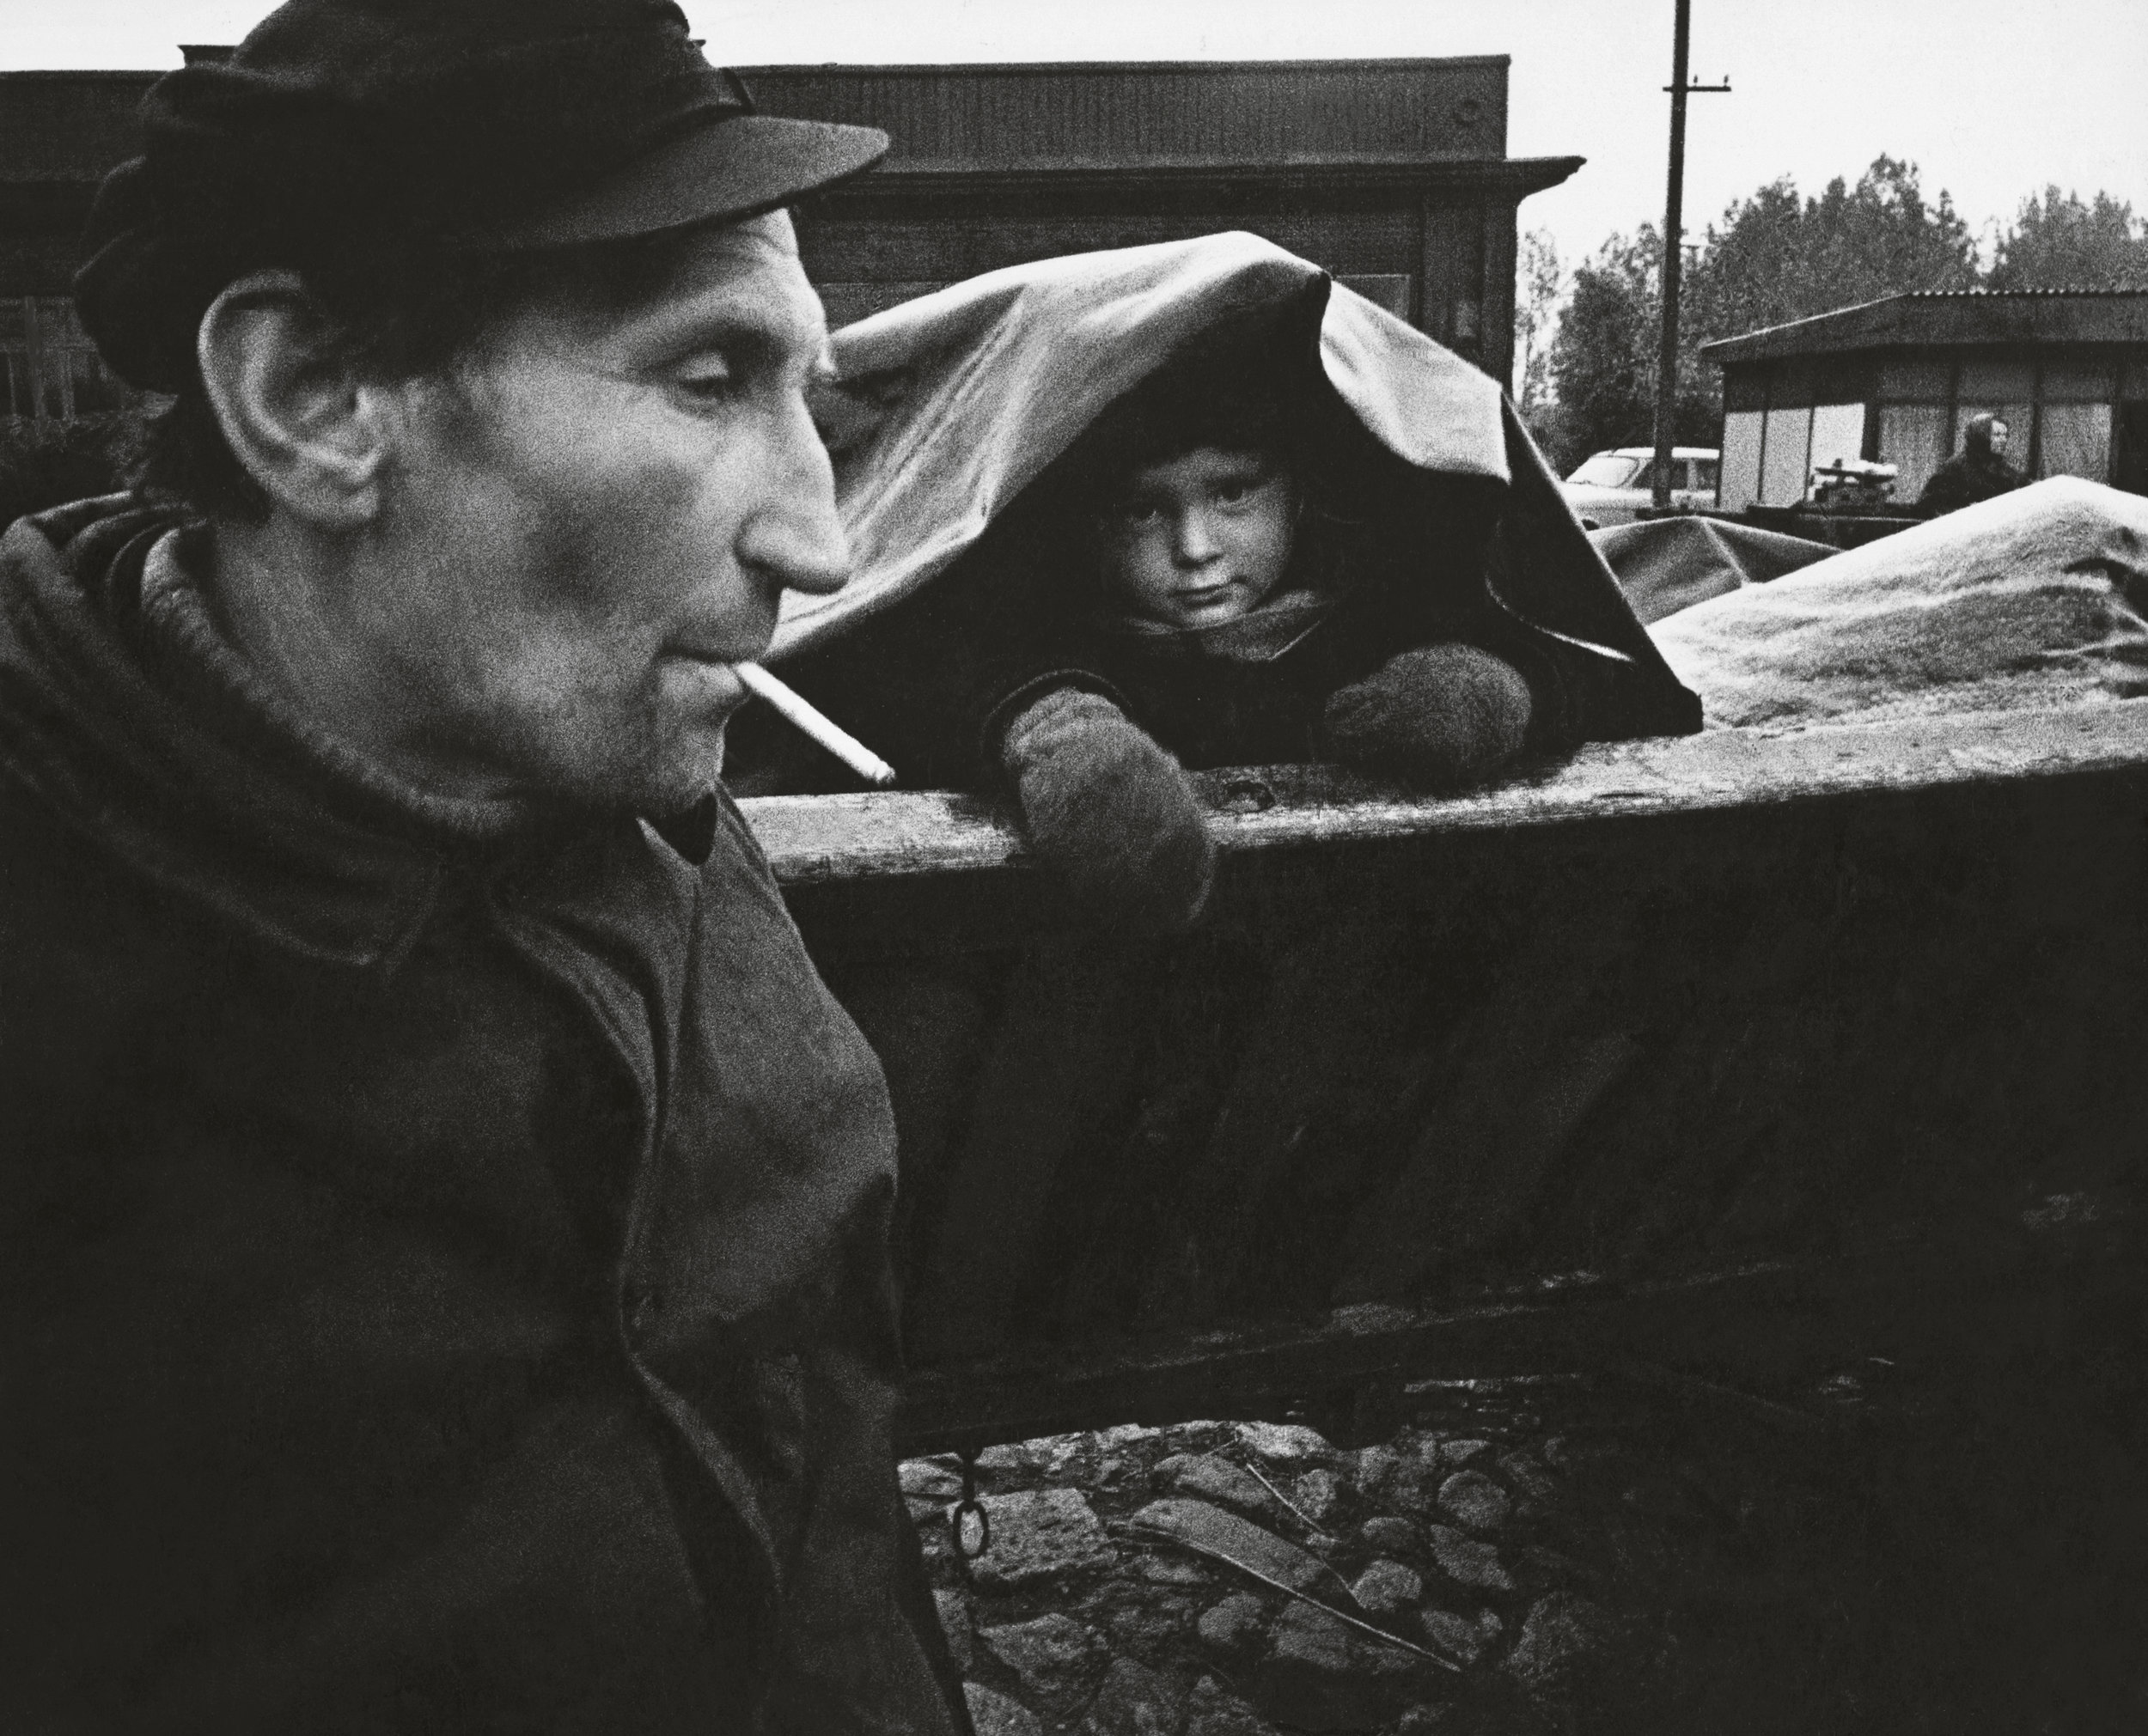 Aleksandras Macijauskas, In Lithuania Rural Markets , 1973. Daily Life: Photography from Lithuania on view at The Print Center, Philadelphia.